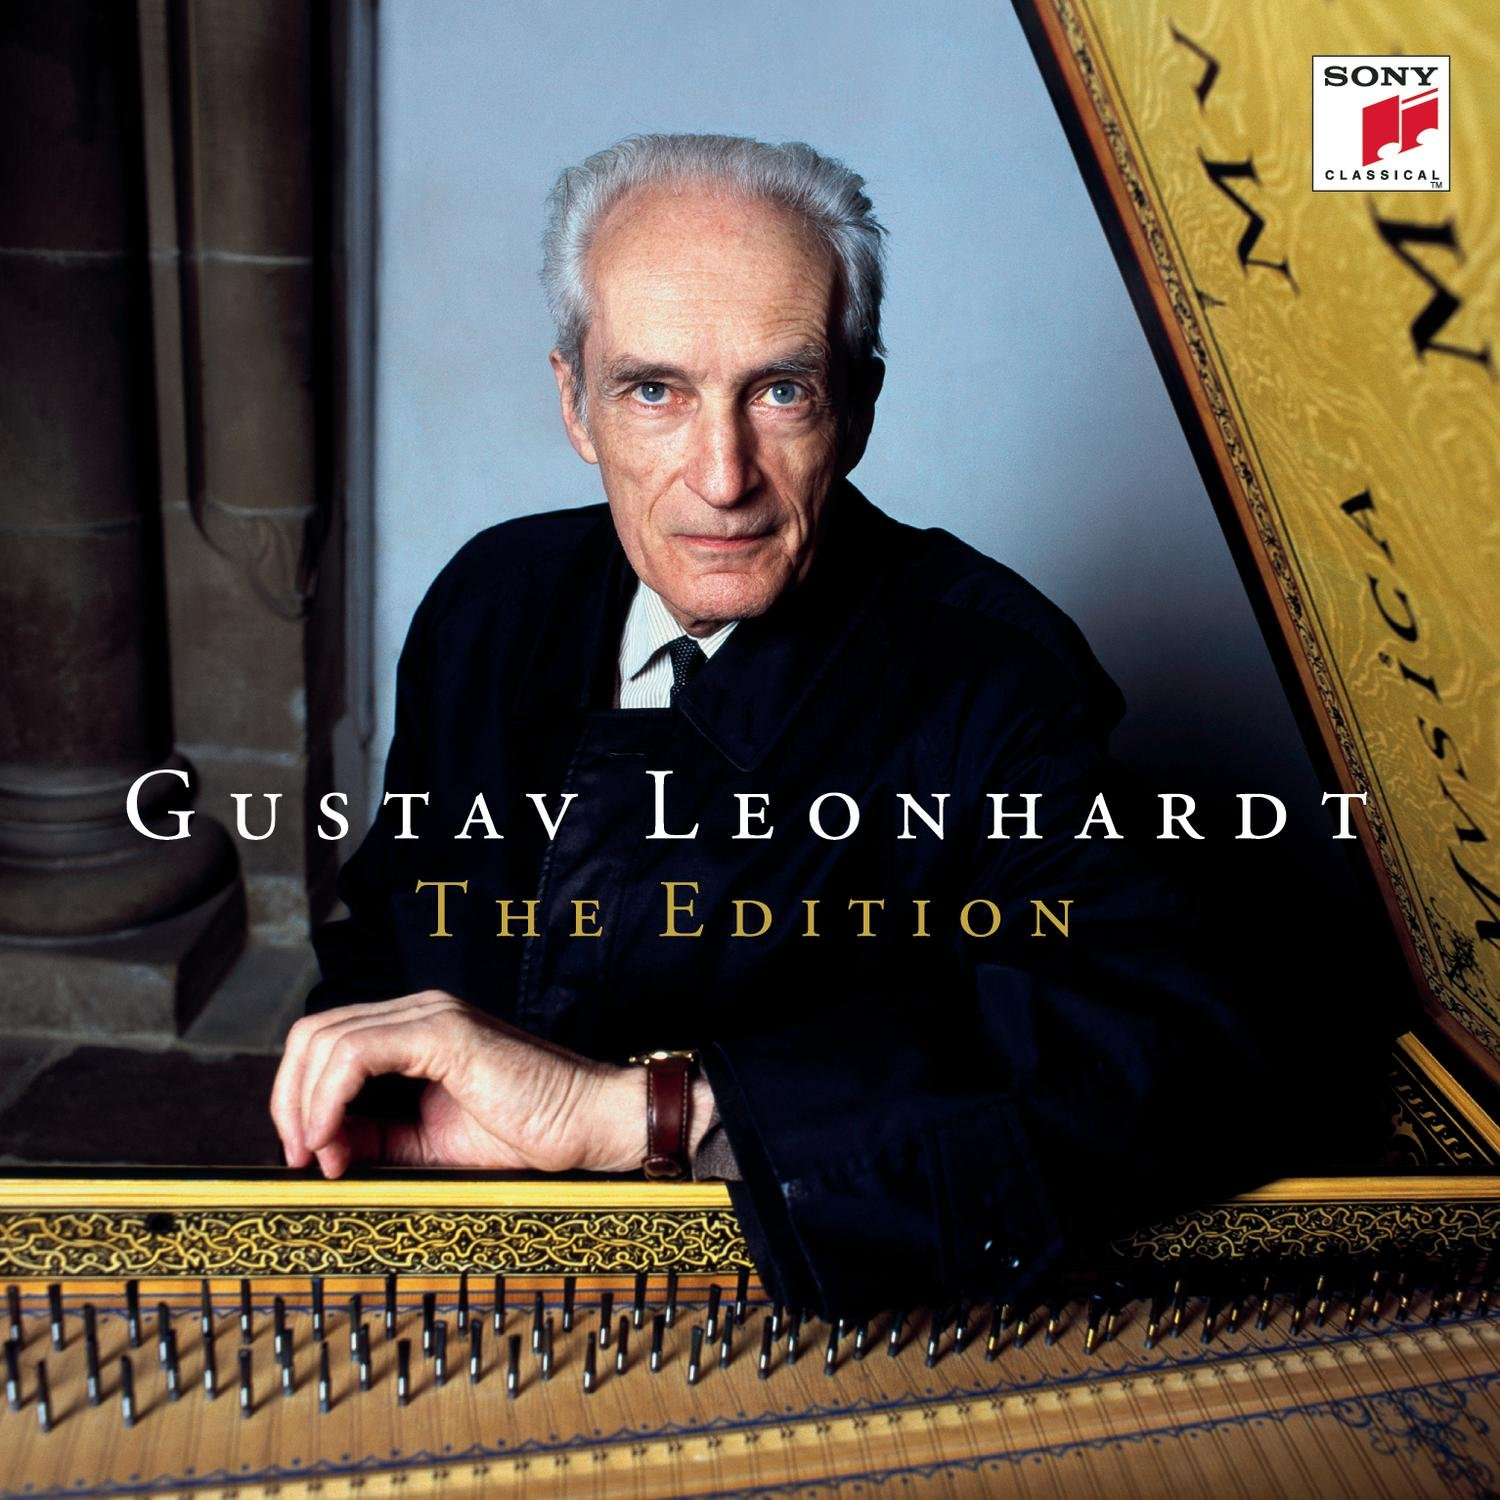 Gustav Leonhardt - The Edition by SONY CLASSICAL